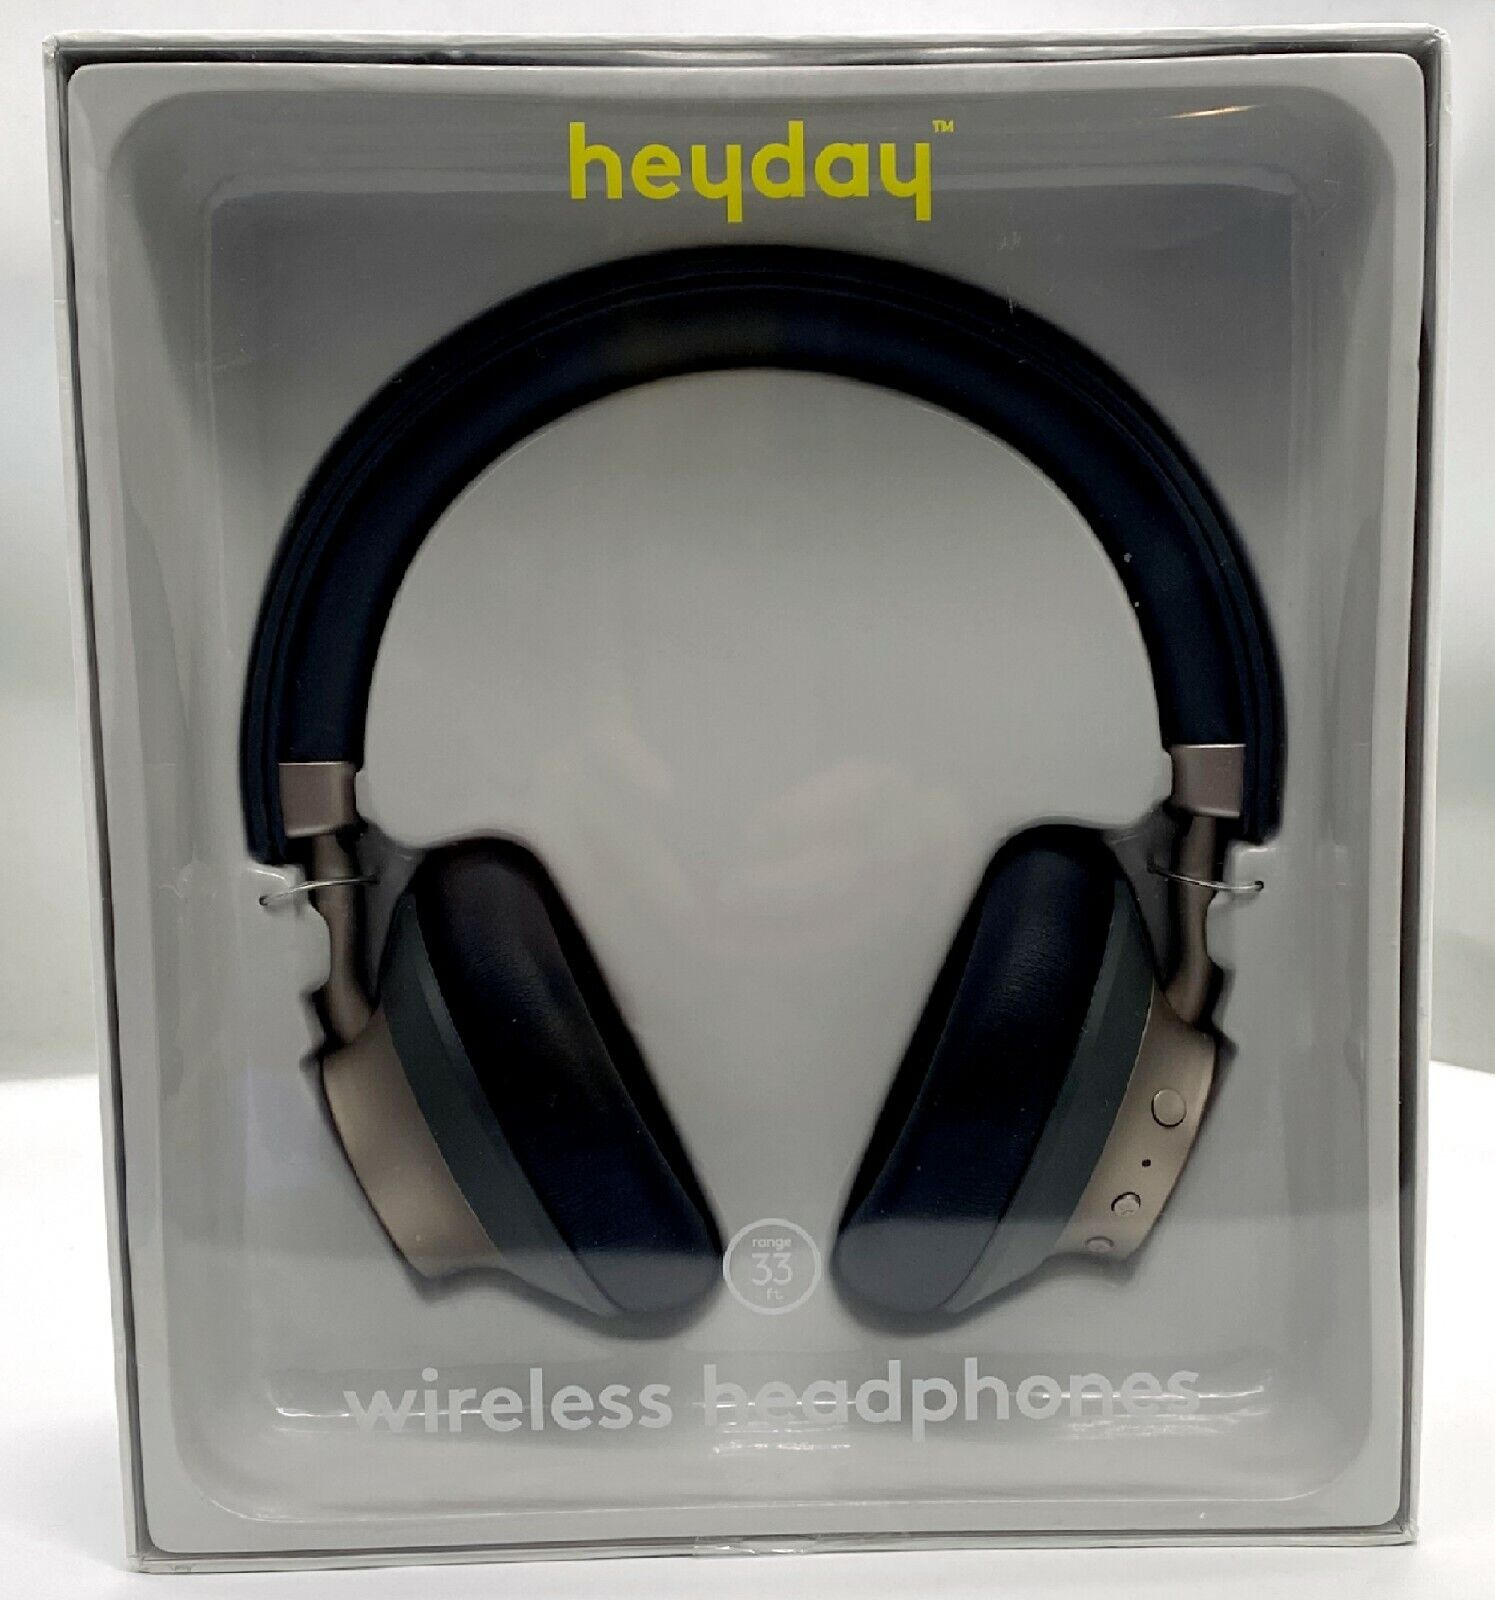 Heyday Wireless On-Ear Headphones Gray/Gold 53246707 New Bluetooth Microphone - $27.50